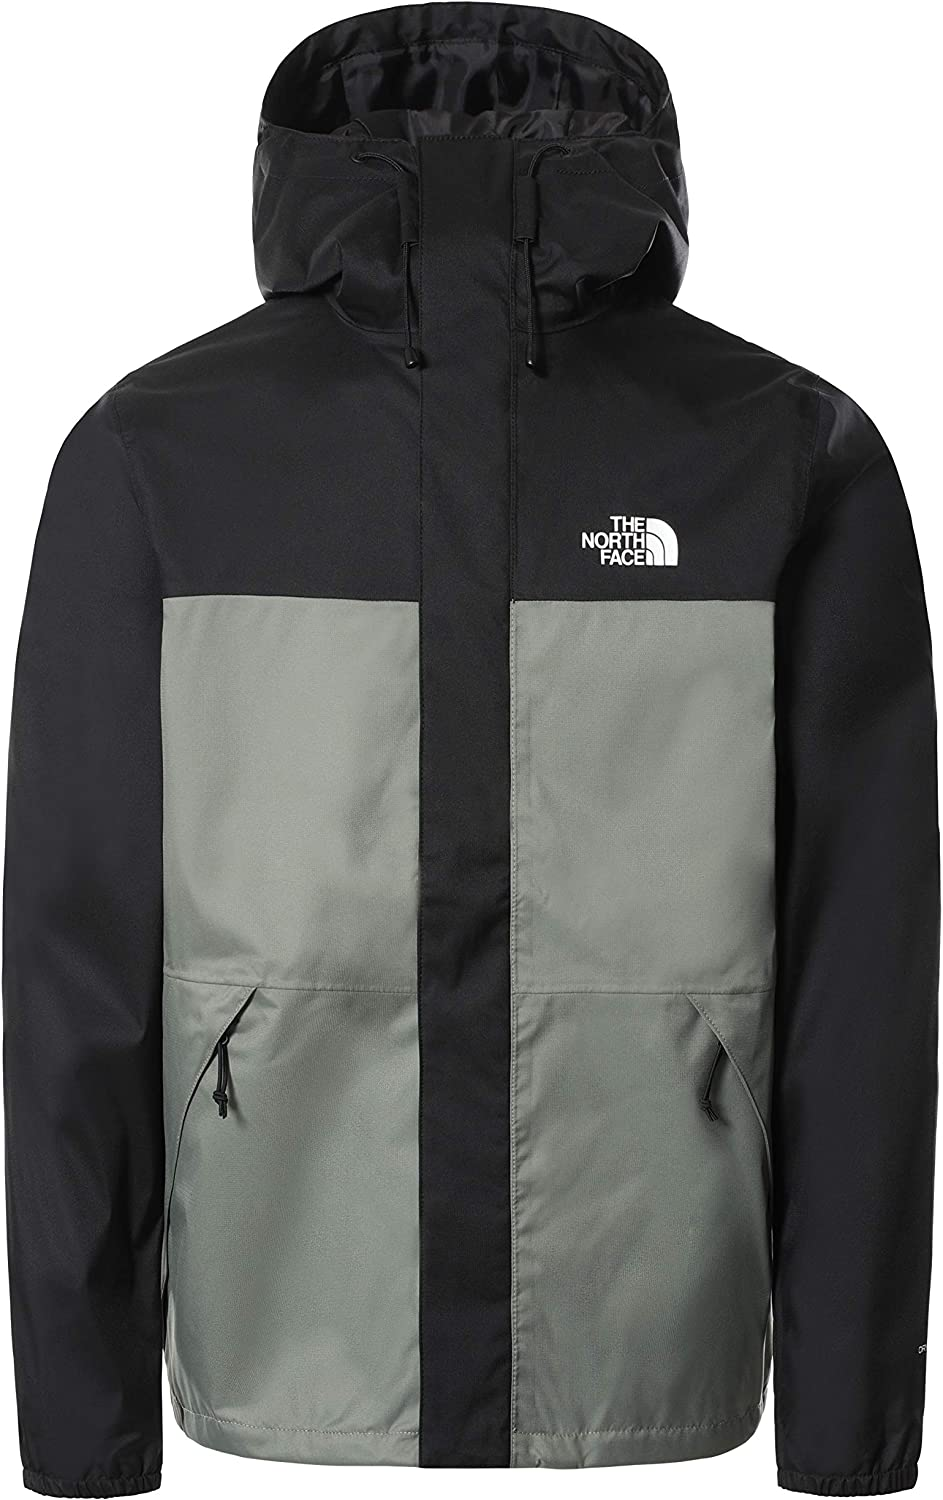 The North Face - Chaqueta Shell para Hombres - Chaqueta Impermeable Ligera - Agave Green